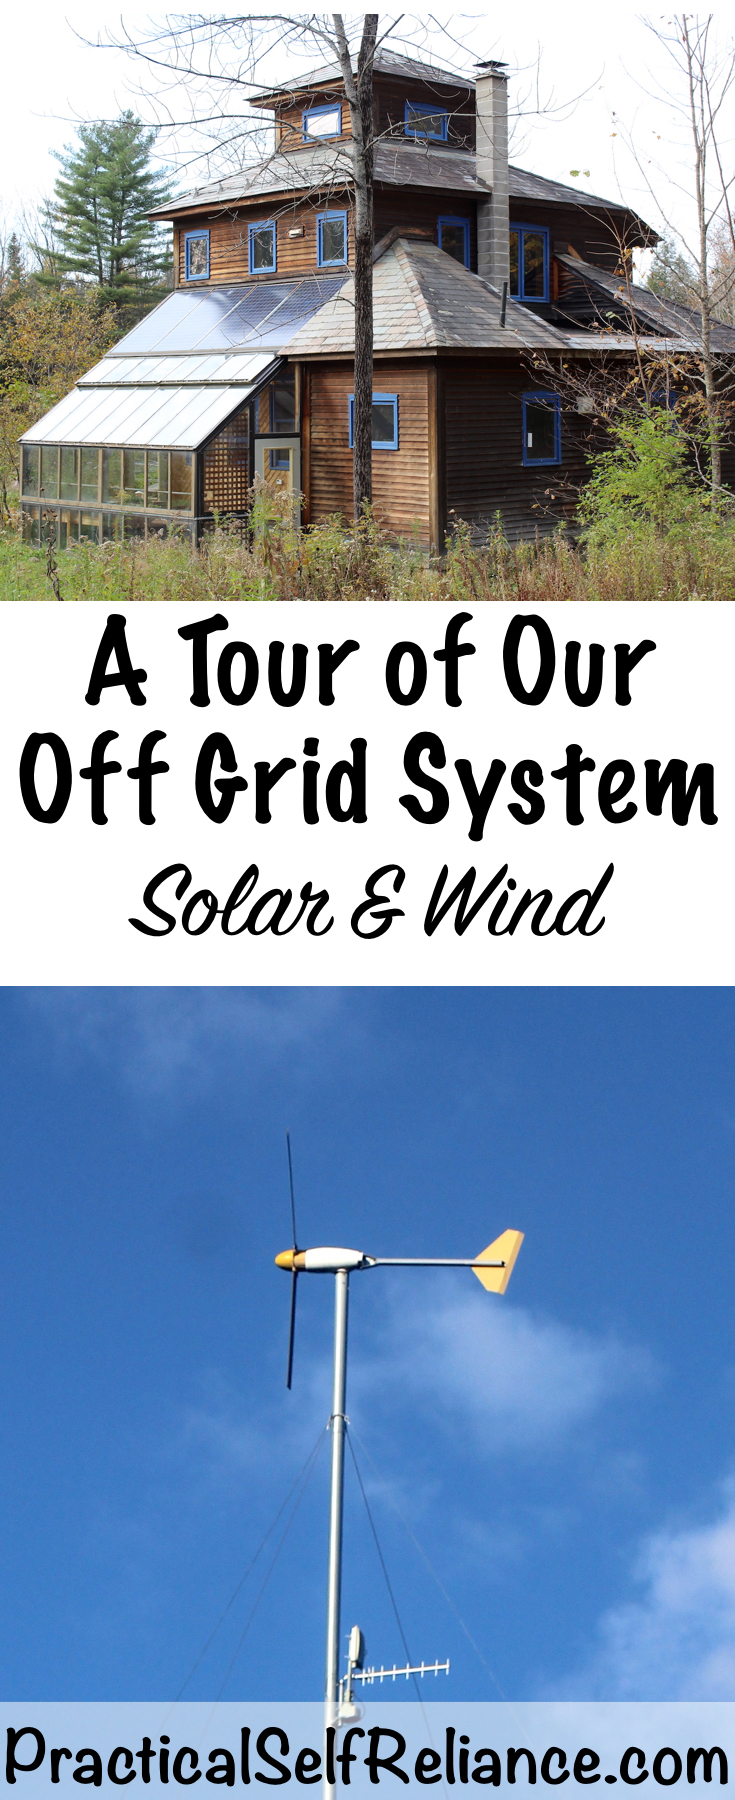 Our Off Grid Solar & Wind Setup (Tour and Specs)